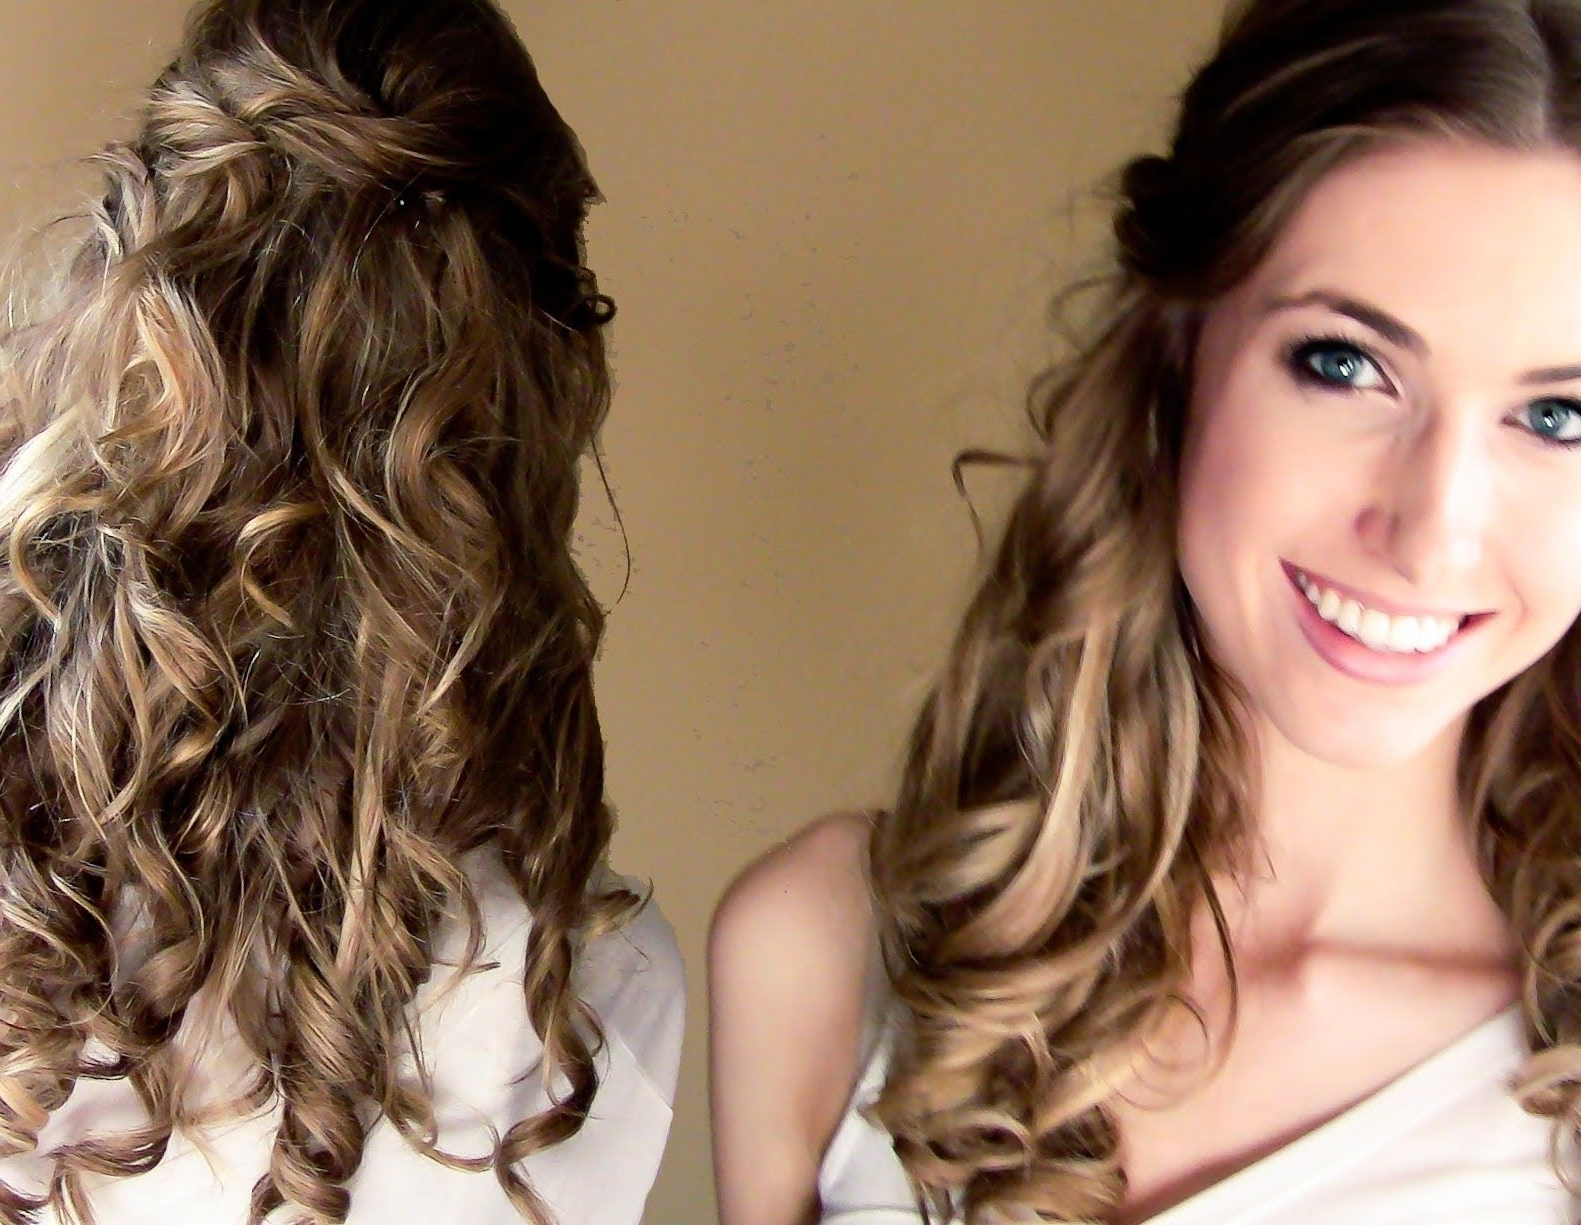 Simple Diy Wedding Hairstyle #weddinghair #budgetwedding With Regard To Well Known Diy Wedding Guest Hairstyles (View 9 of 15)